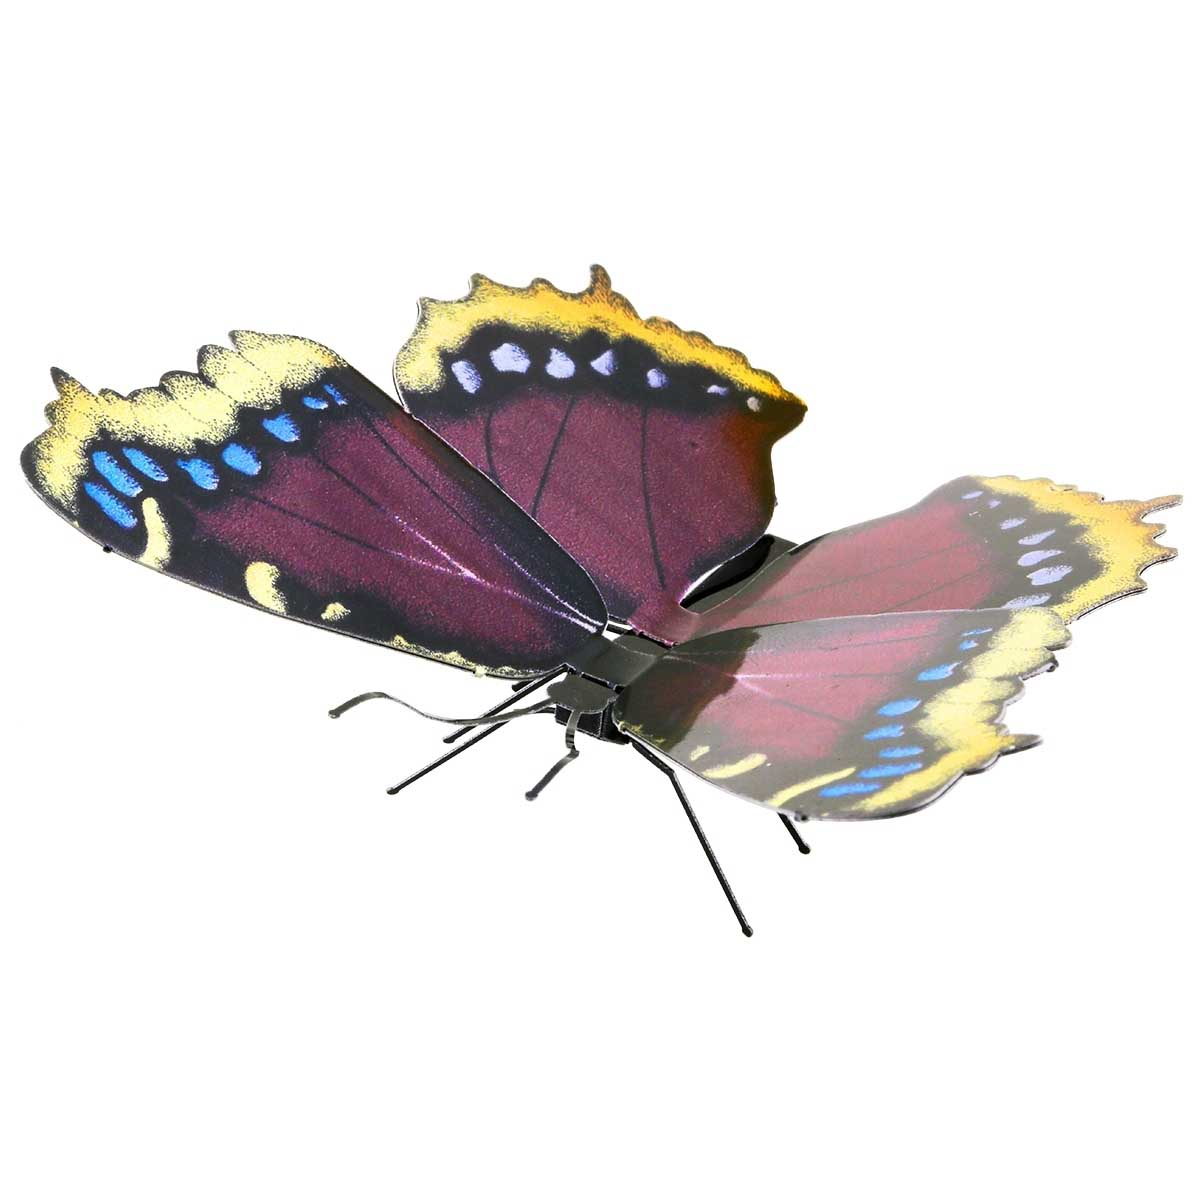 Mourning Cloak Butterflies and Insects Metal Puzzles